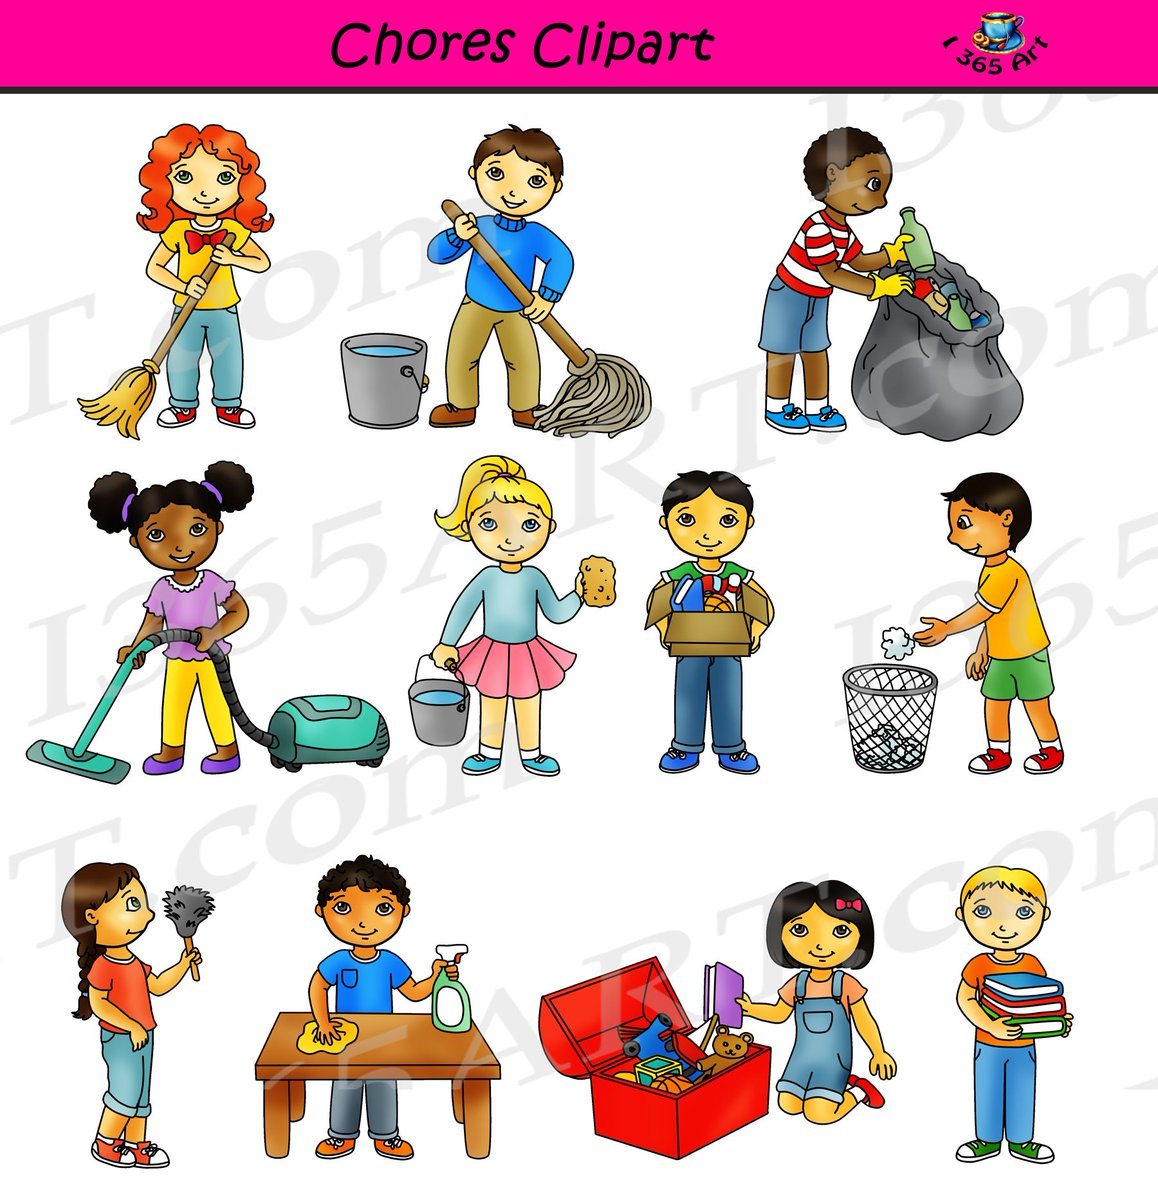 clipart 4 school on twitter quotchores clipart �